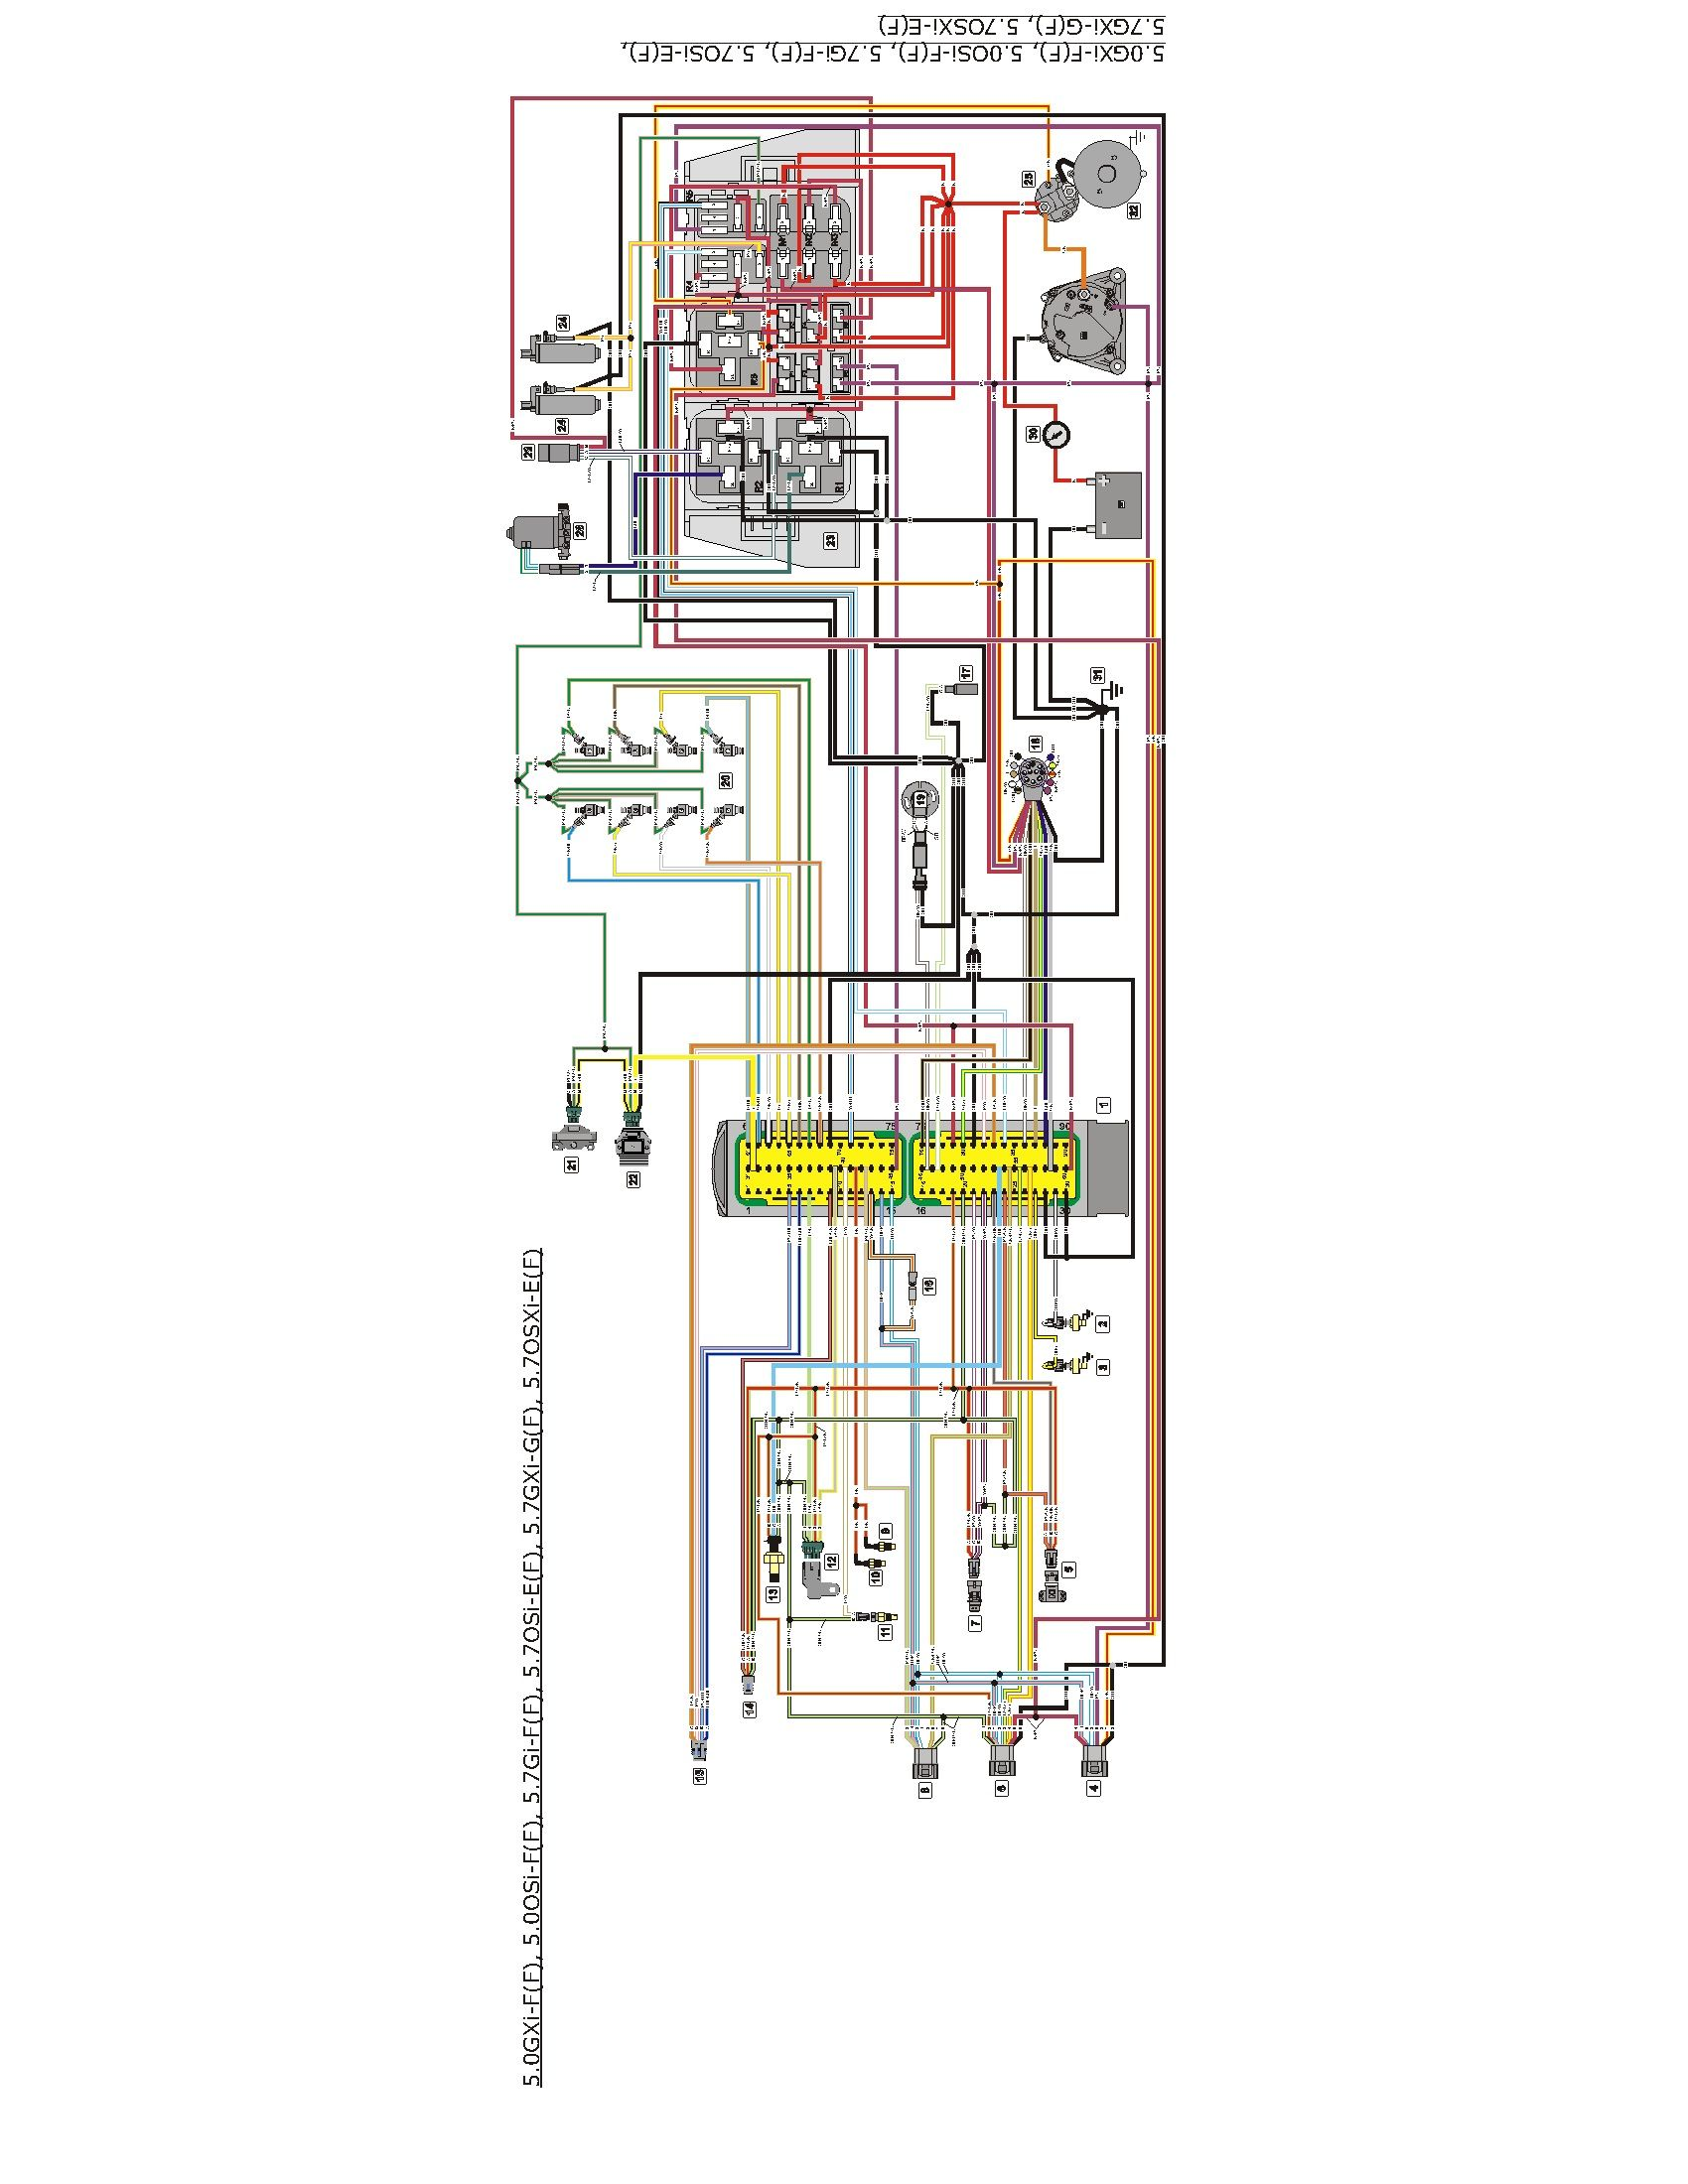 Volvo Penta Engine Wiring Diagram Opinions About Starter Motor 5 7 Boat Pinterest Rh Com Fuel Pump Relay Schematic